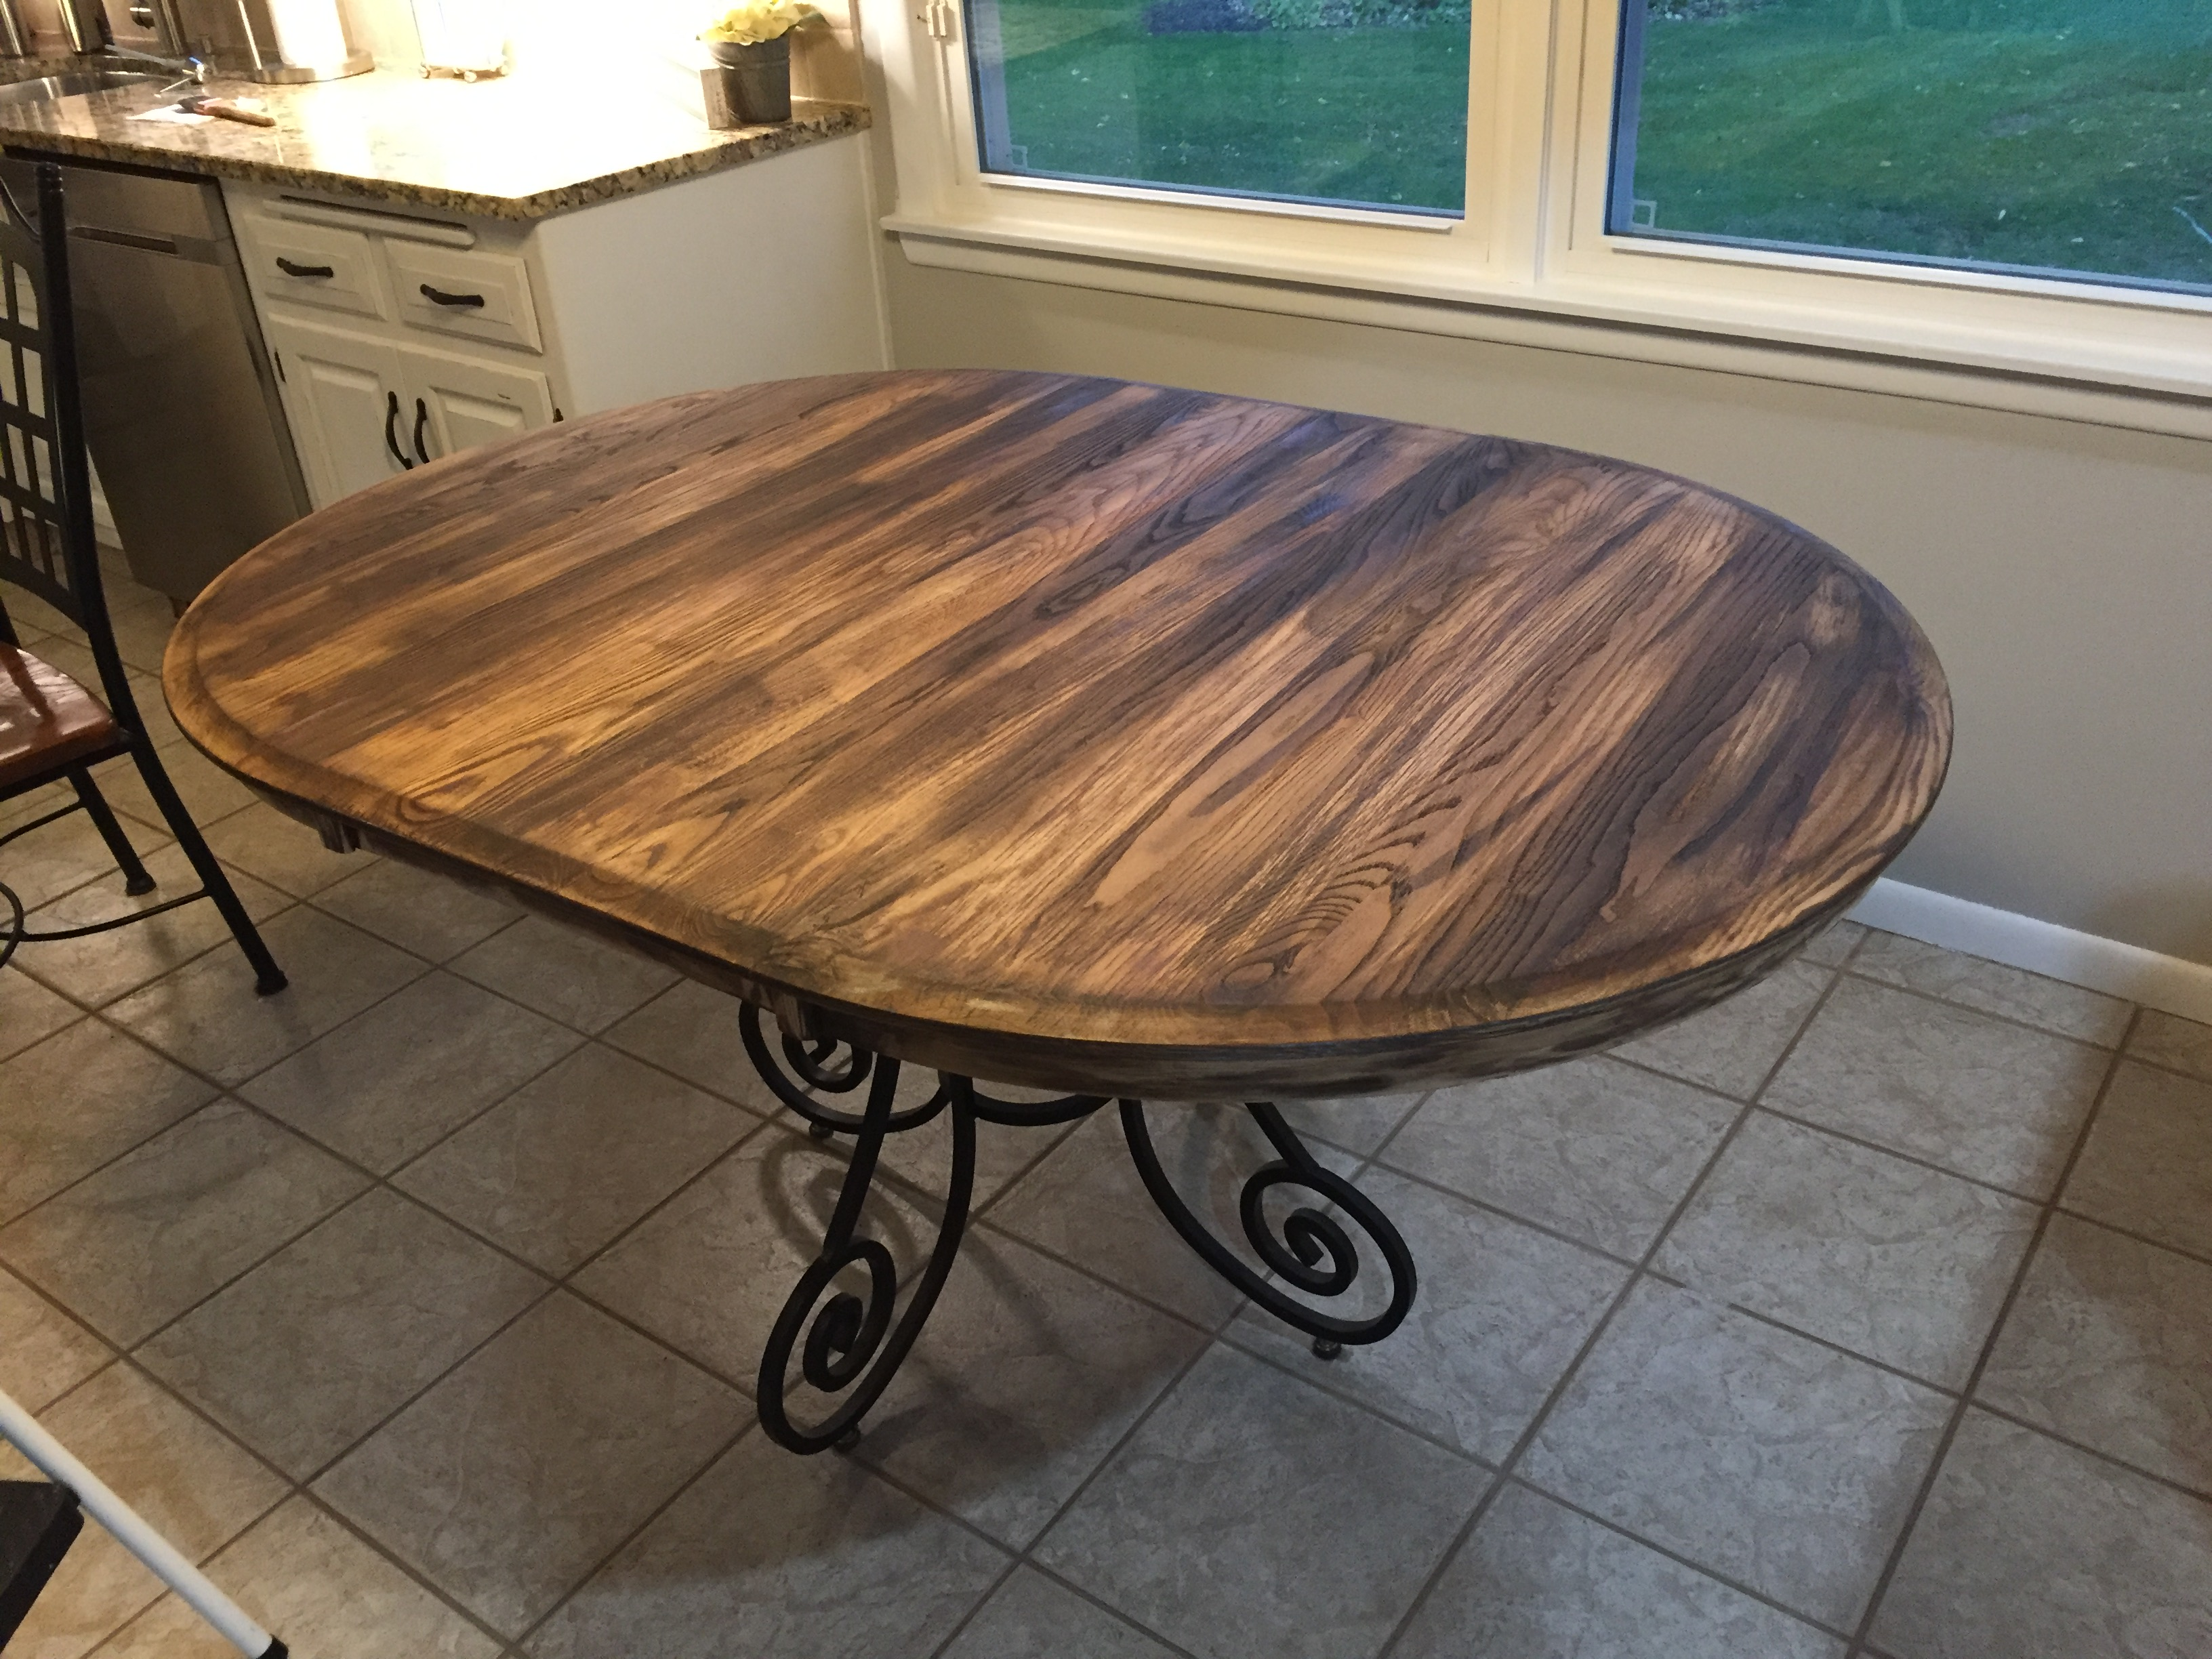 Refinish table in rustic barnwood farmhouse style